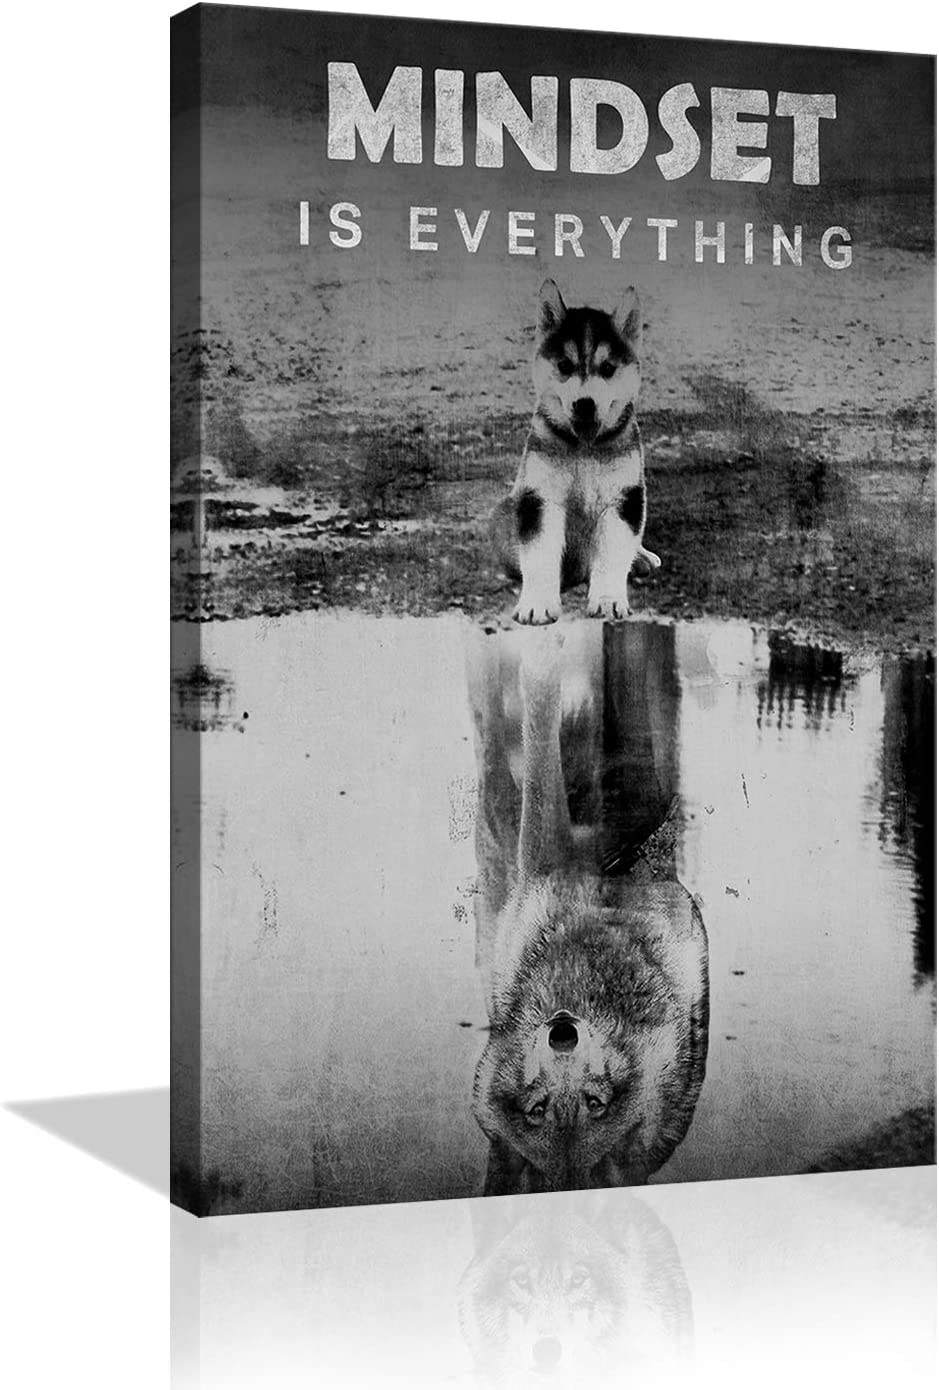 Inspirational Canvas Wall Art Mindset is Everything Entrepreneur Quotes Poster Dog Wolf Painting Prints Motivational Wall Decor for Office Gym Living Room Framed Ready to Hang